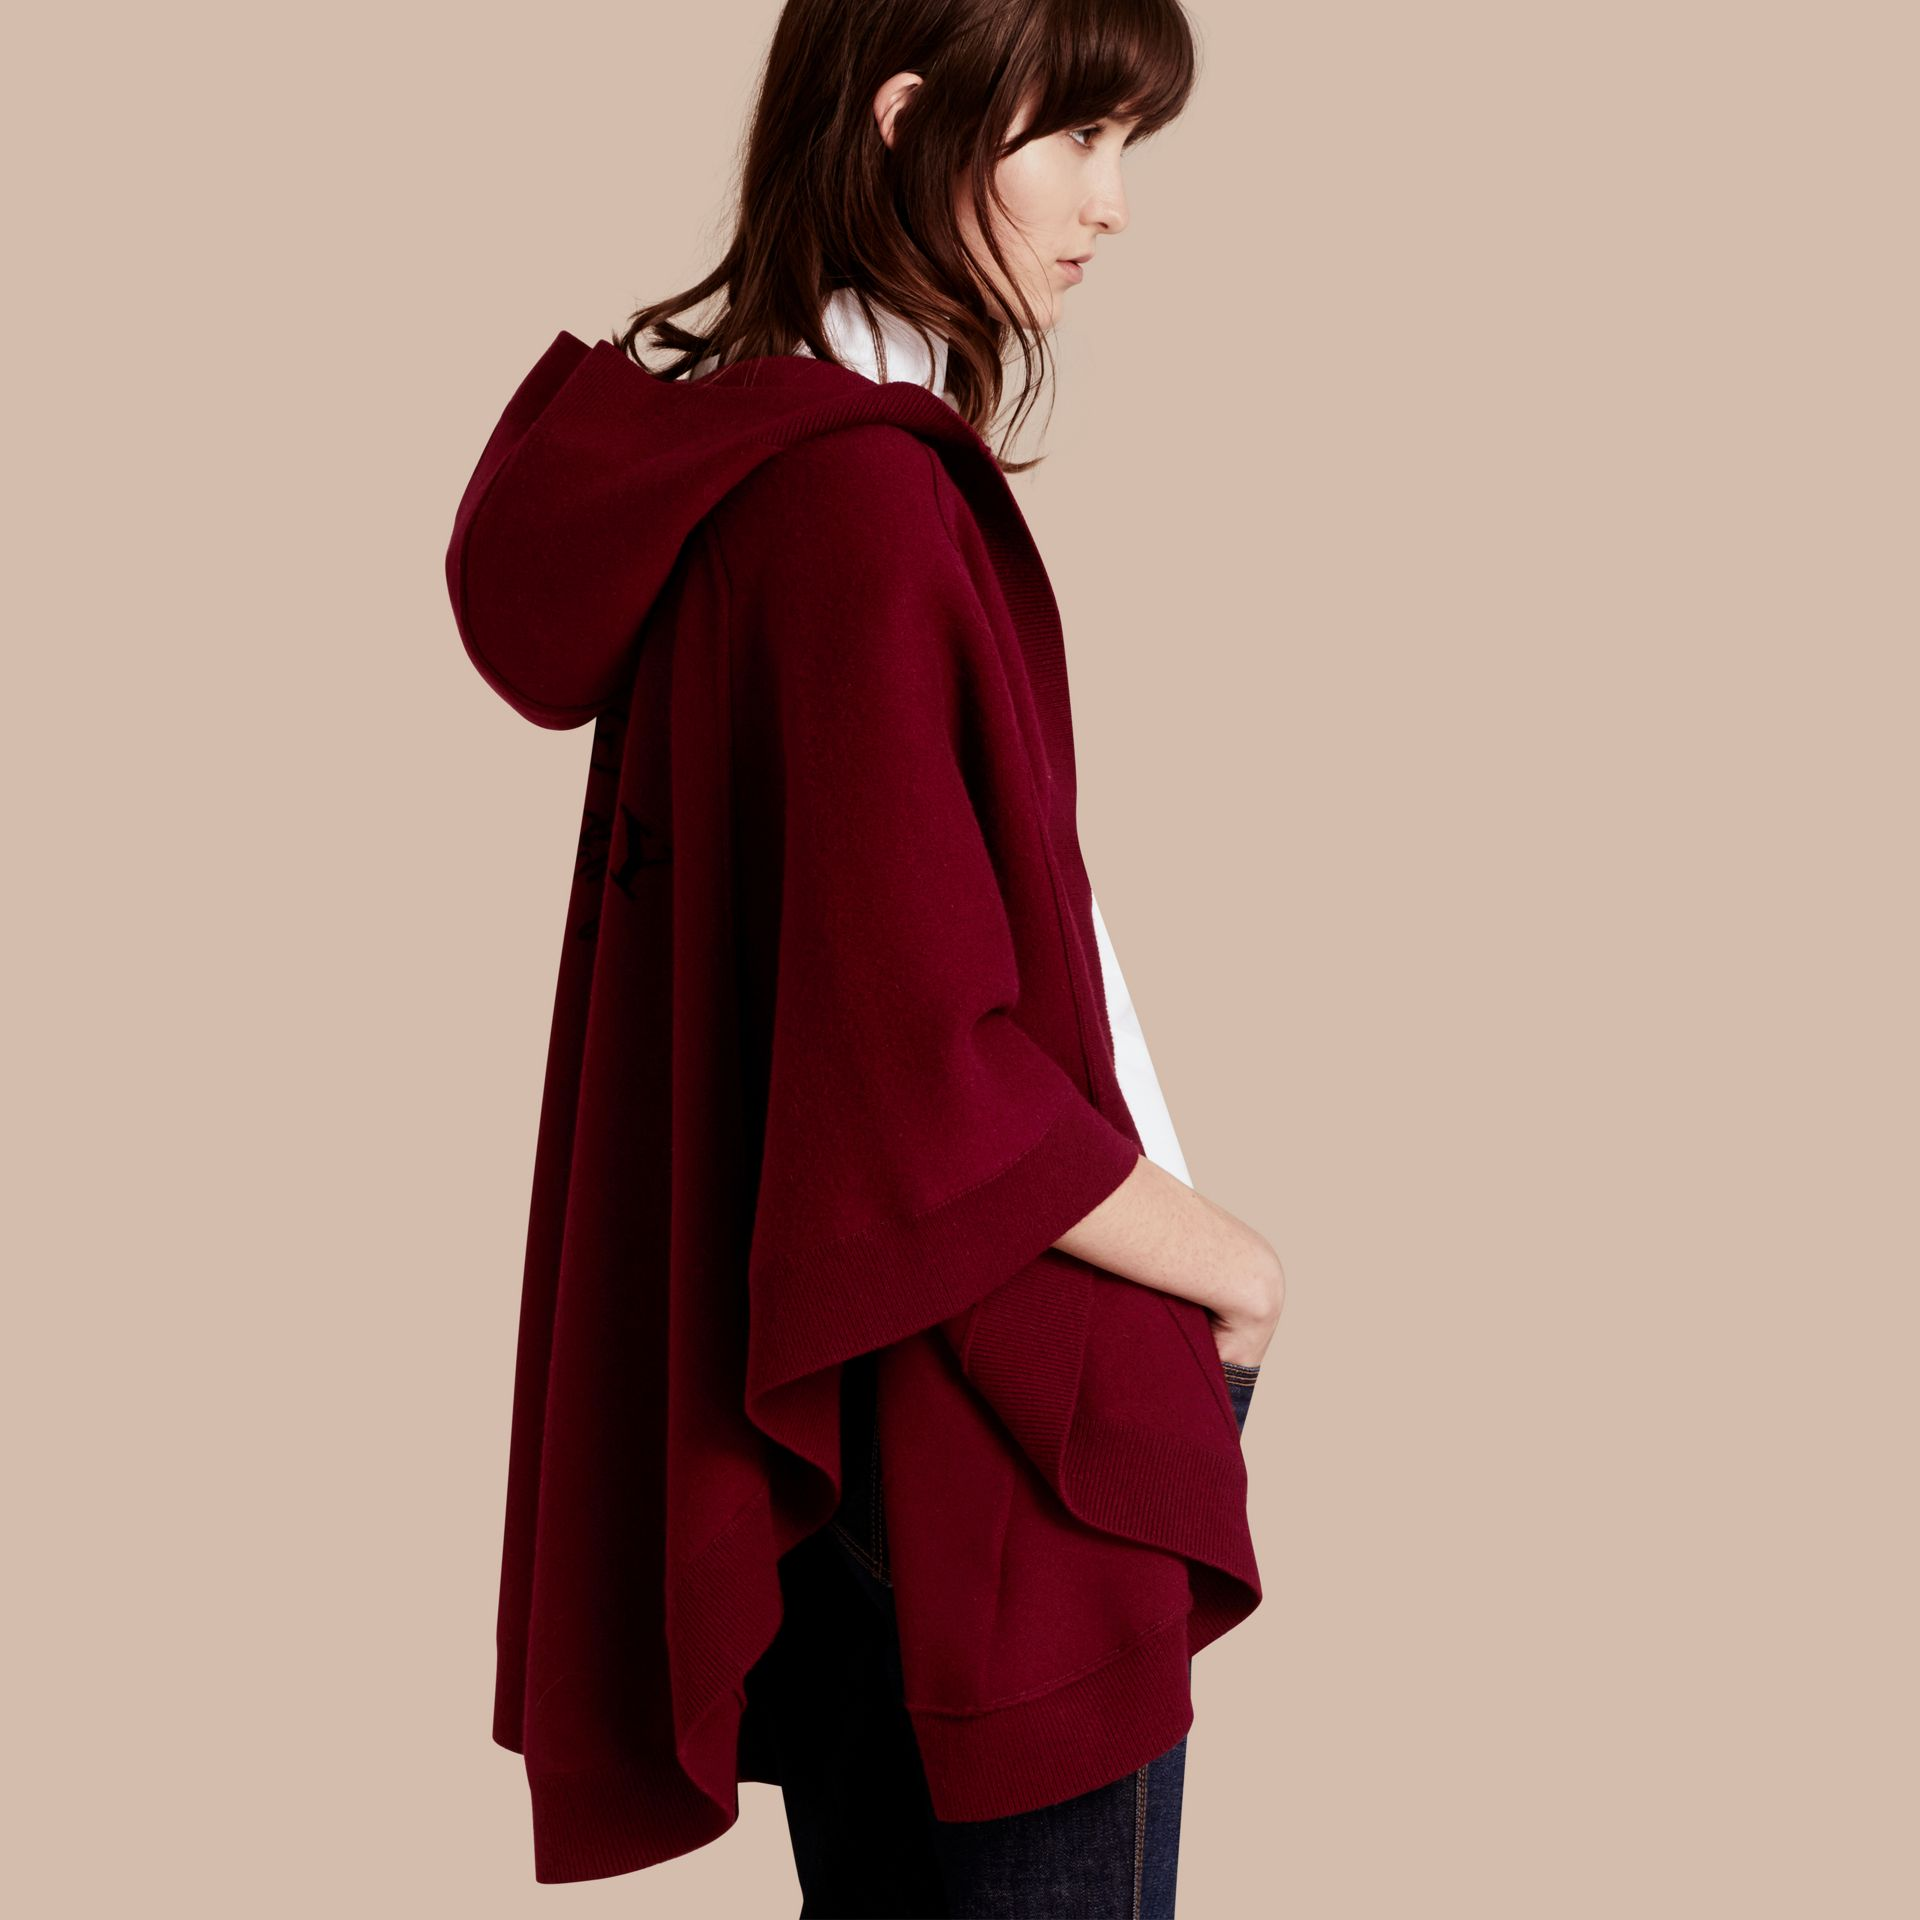 Wool Cashmere Blend Hooded Poncho in Deep Red - Women | Burberry Australia - gallery image 1